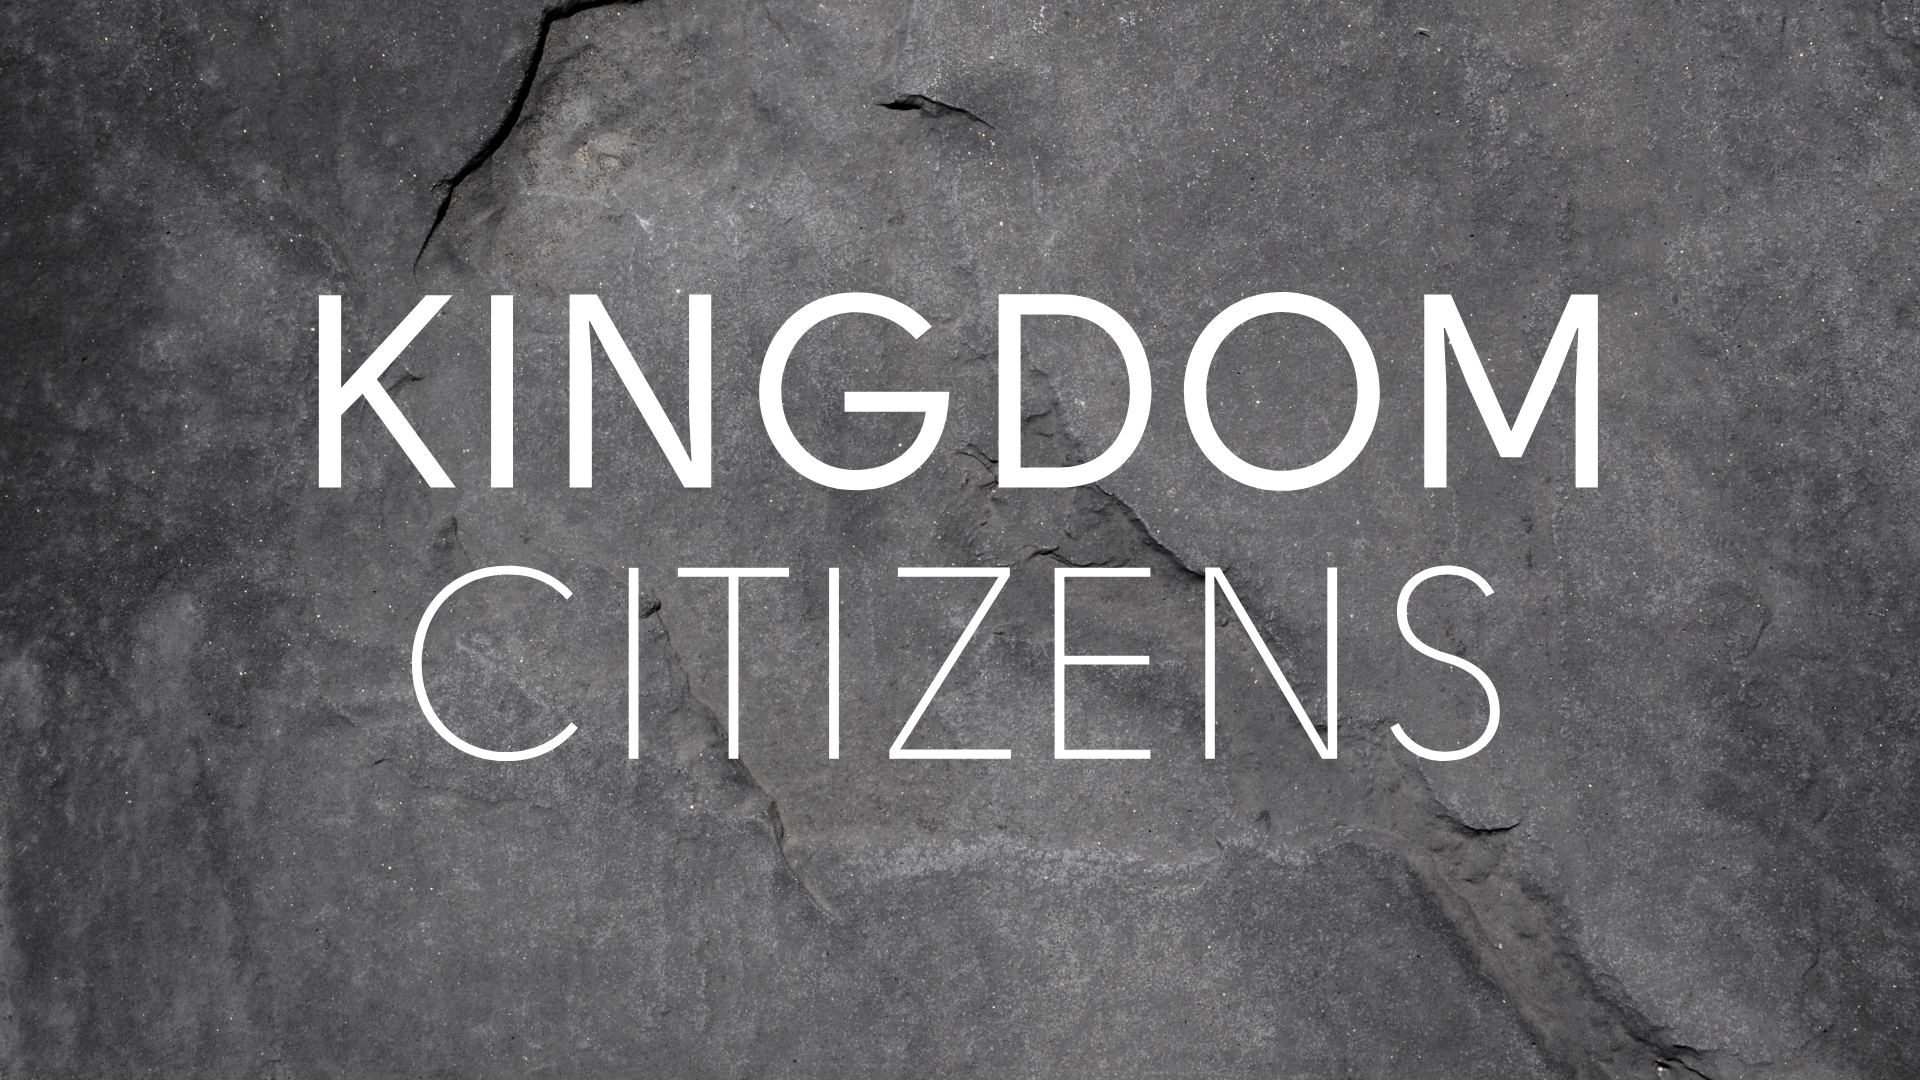 Kingdom Citizens Pray